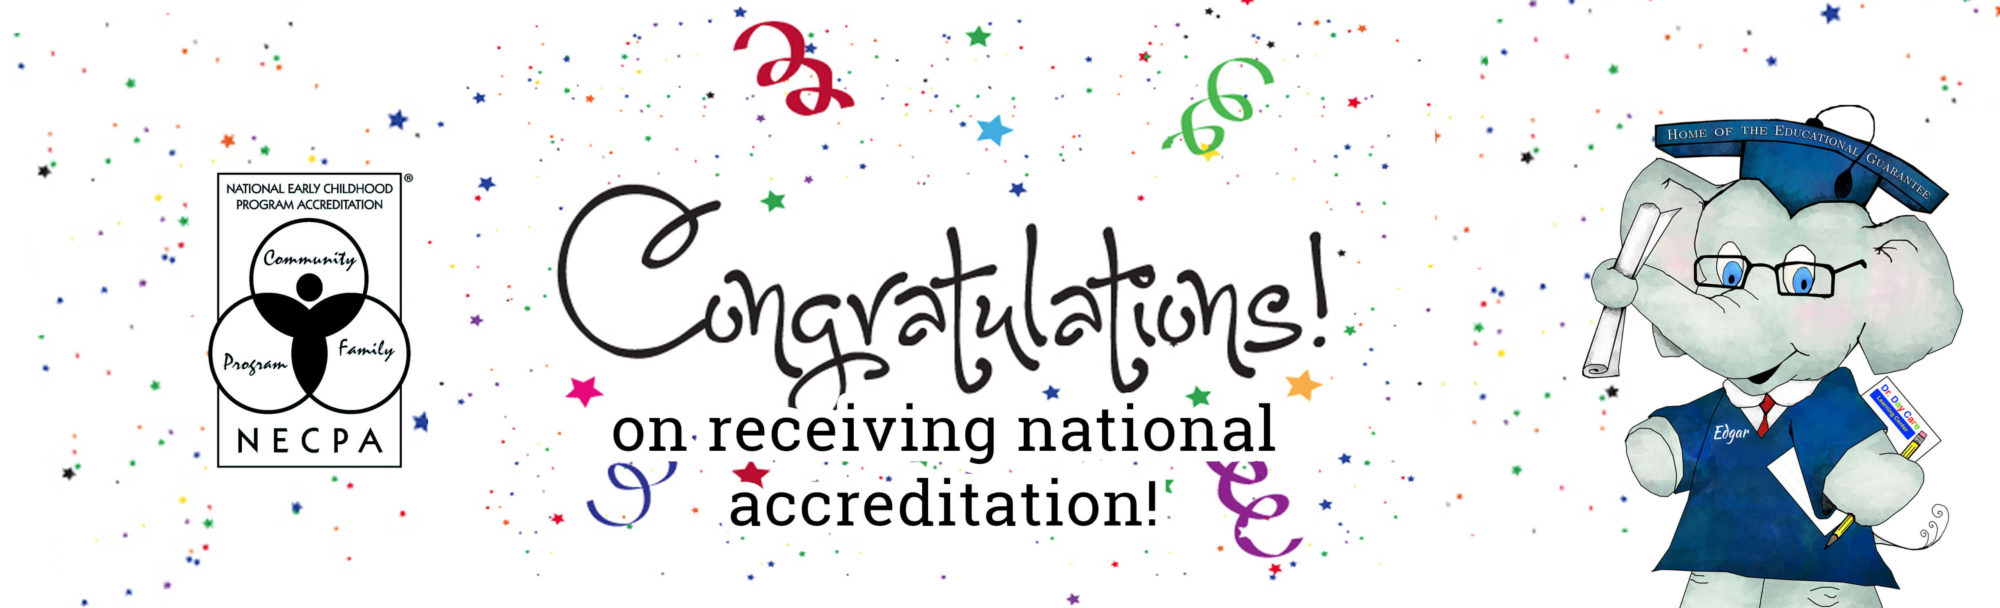 Congratulations DDC Cumberland on earning National Accreditation!